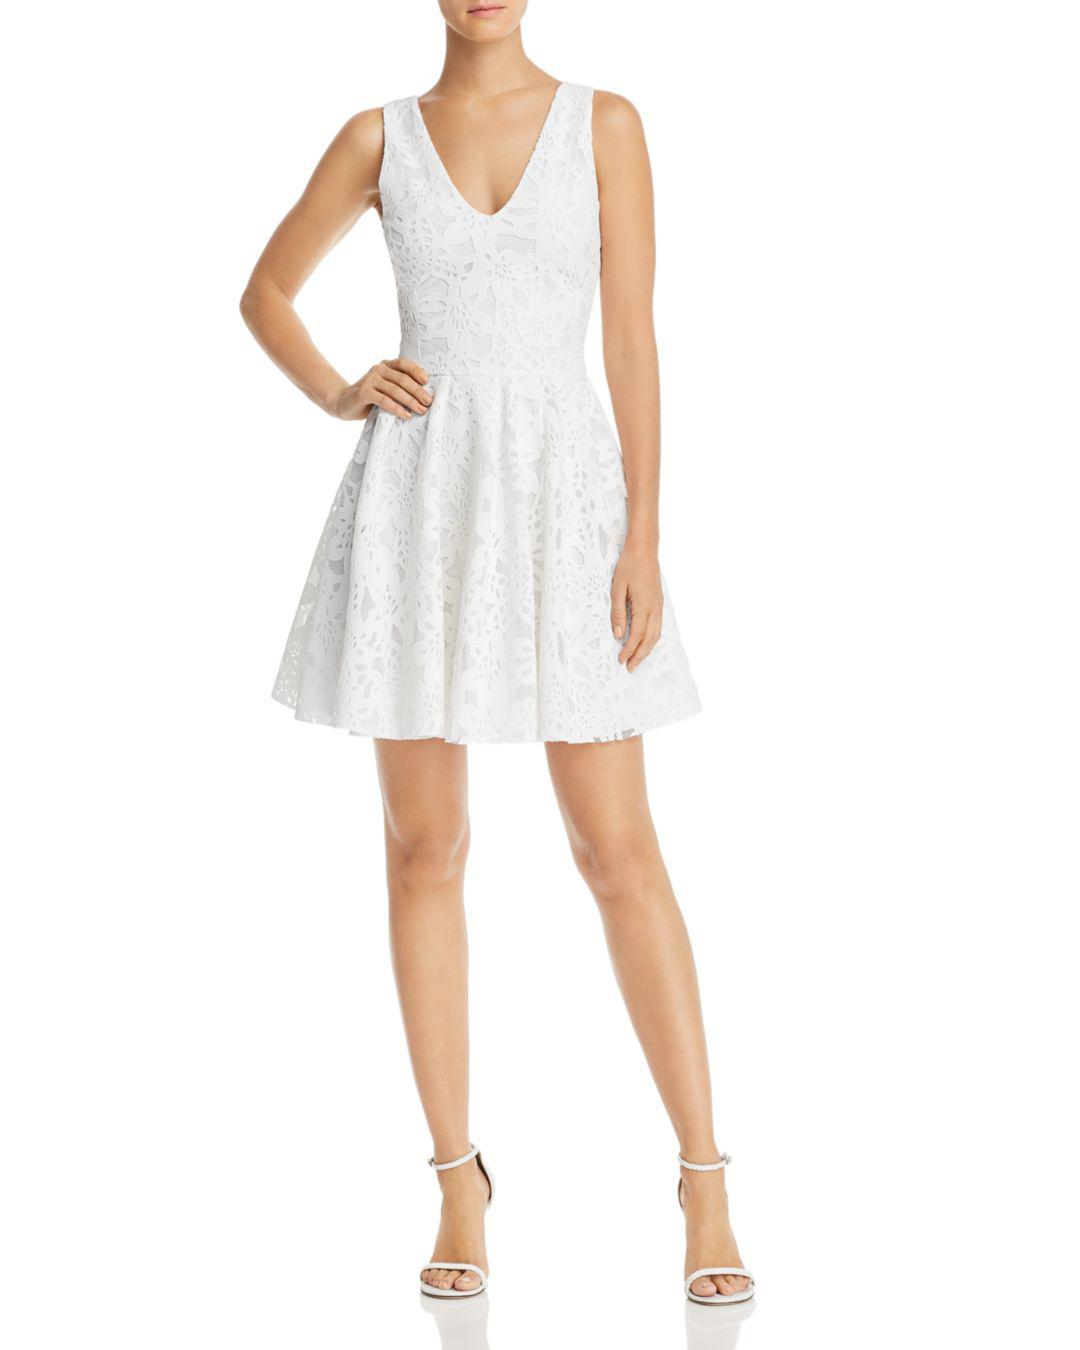 402f6af433 Aqua Floral Mesh Fit-and-flare Dress in White - Lyst